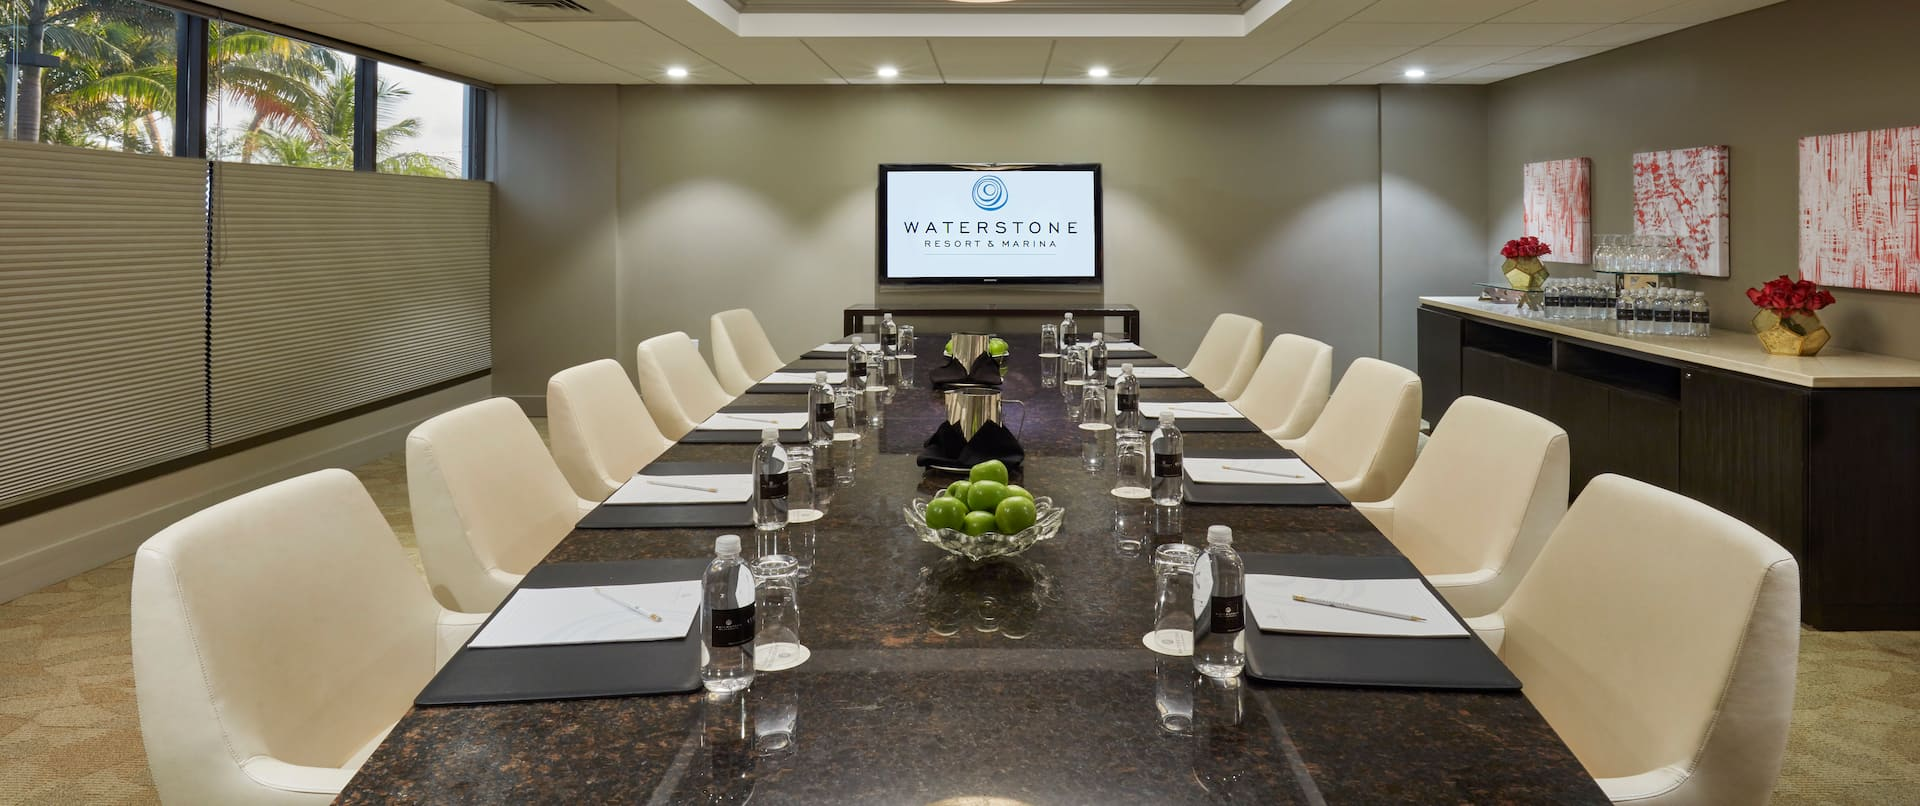 Meeting Agendas, Writing Instruments and Bottle Waters on a Long Table with  Chairs and Presentation Screen in Boardroom